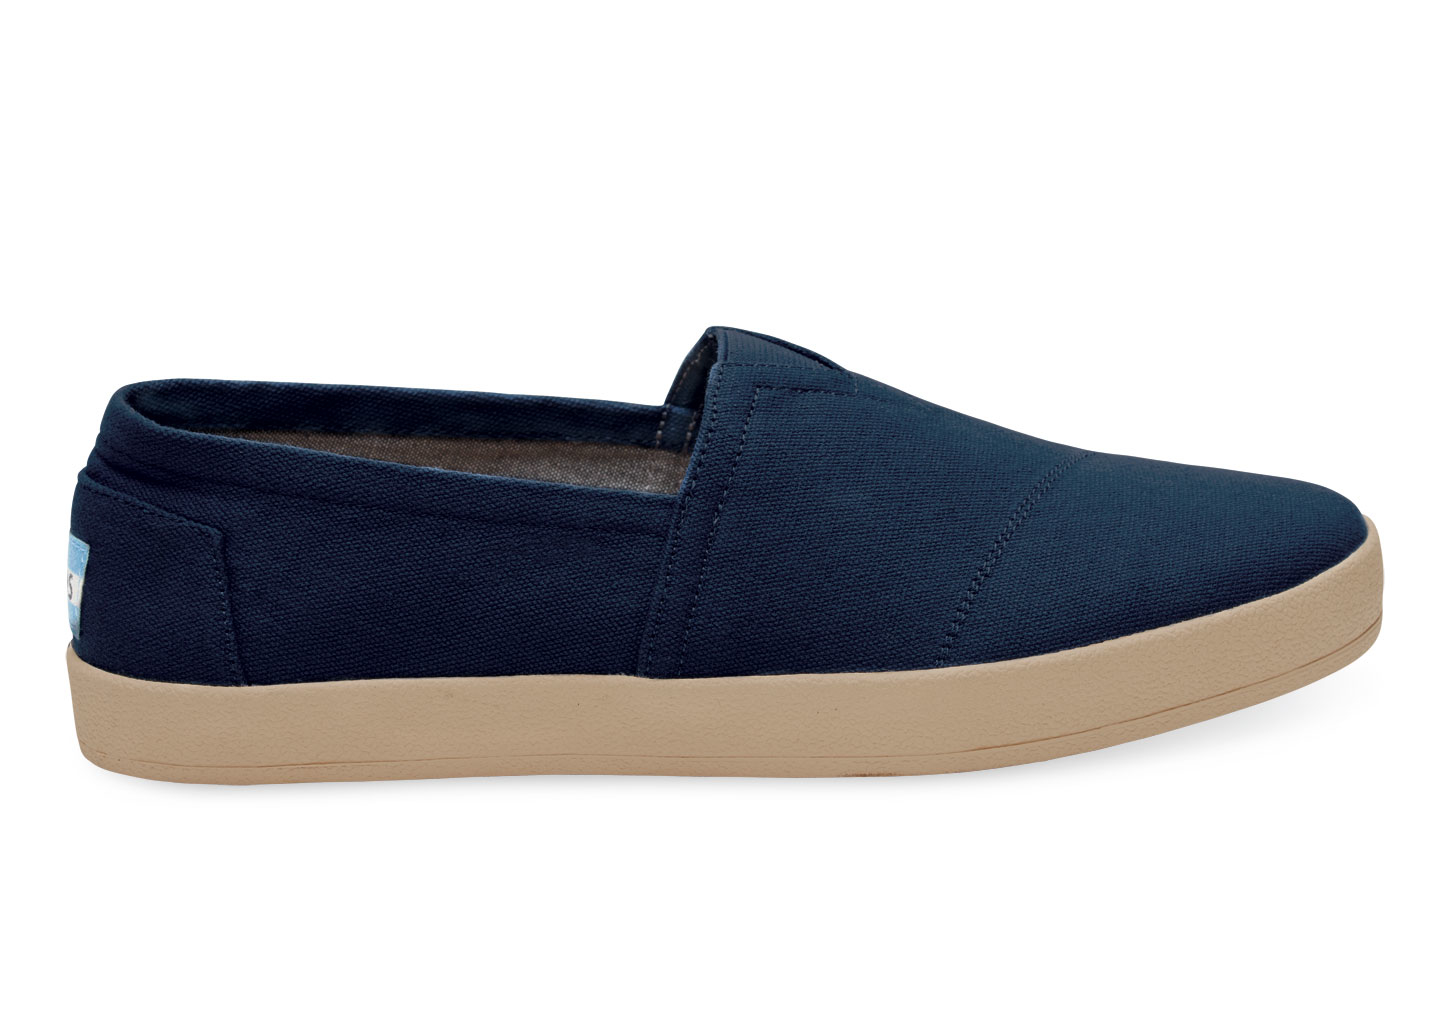 janydo.ml has the best collection of men's slip-ons in stock from great brands like Sperry, Clarks, Merrell, Skechers, Stacy Adams, ECCO and Florsheim. With all kinds of slip on shoes for men, including suede, tassel, non-skid and cushioned slip-ons, we have all your favorite varieties.